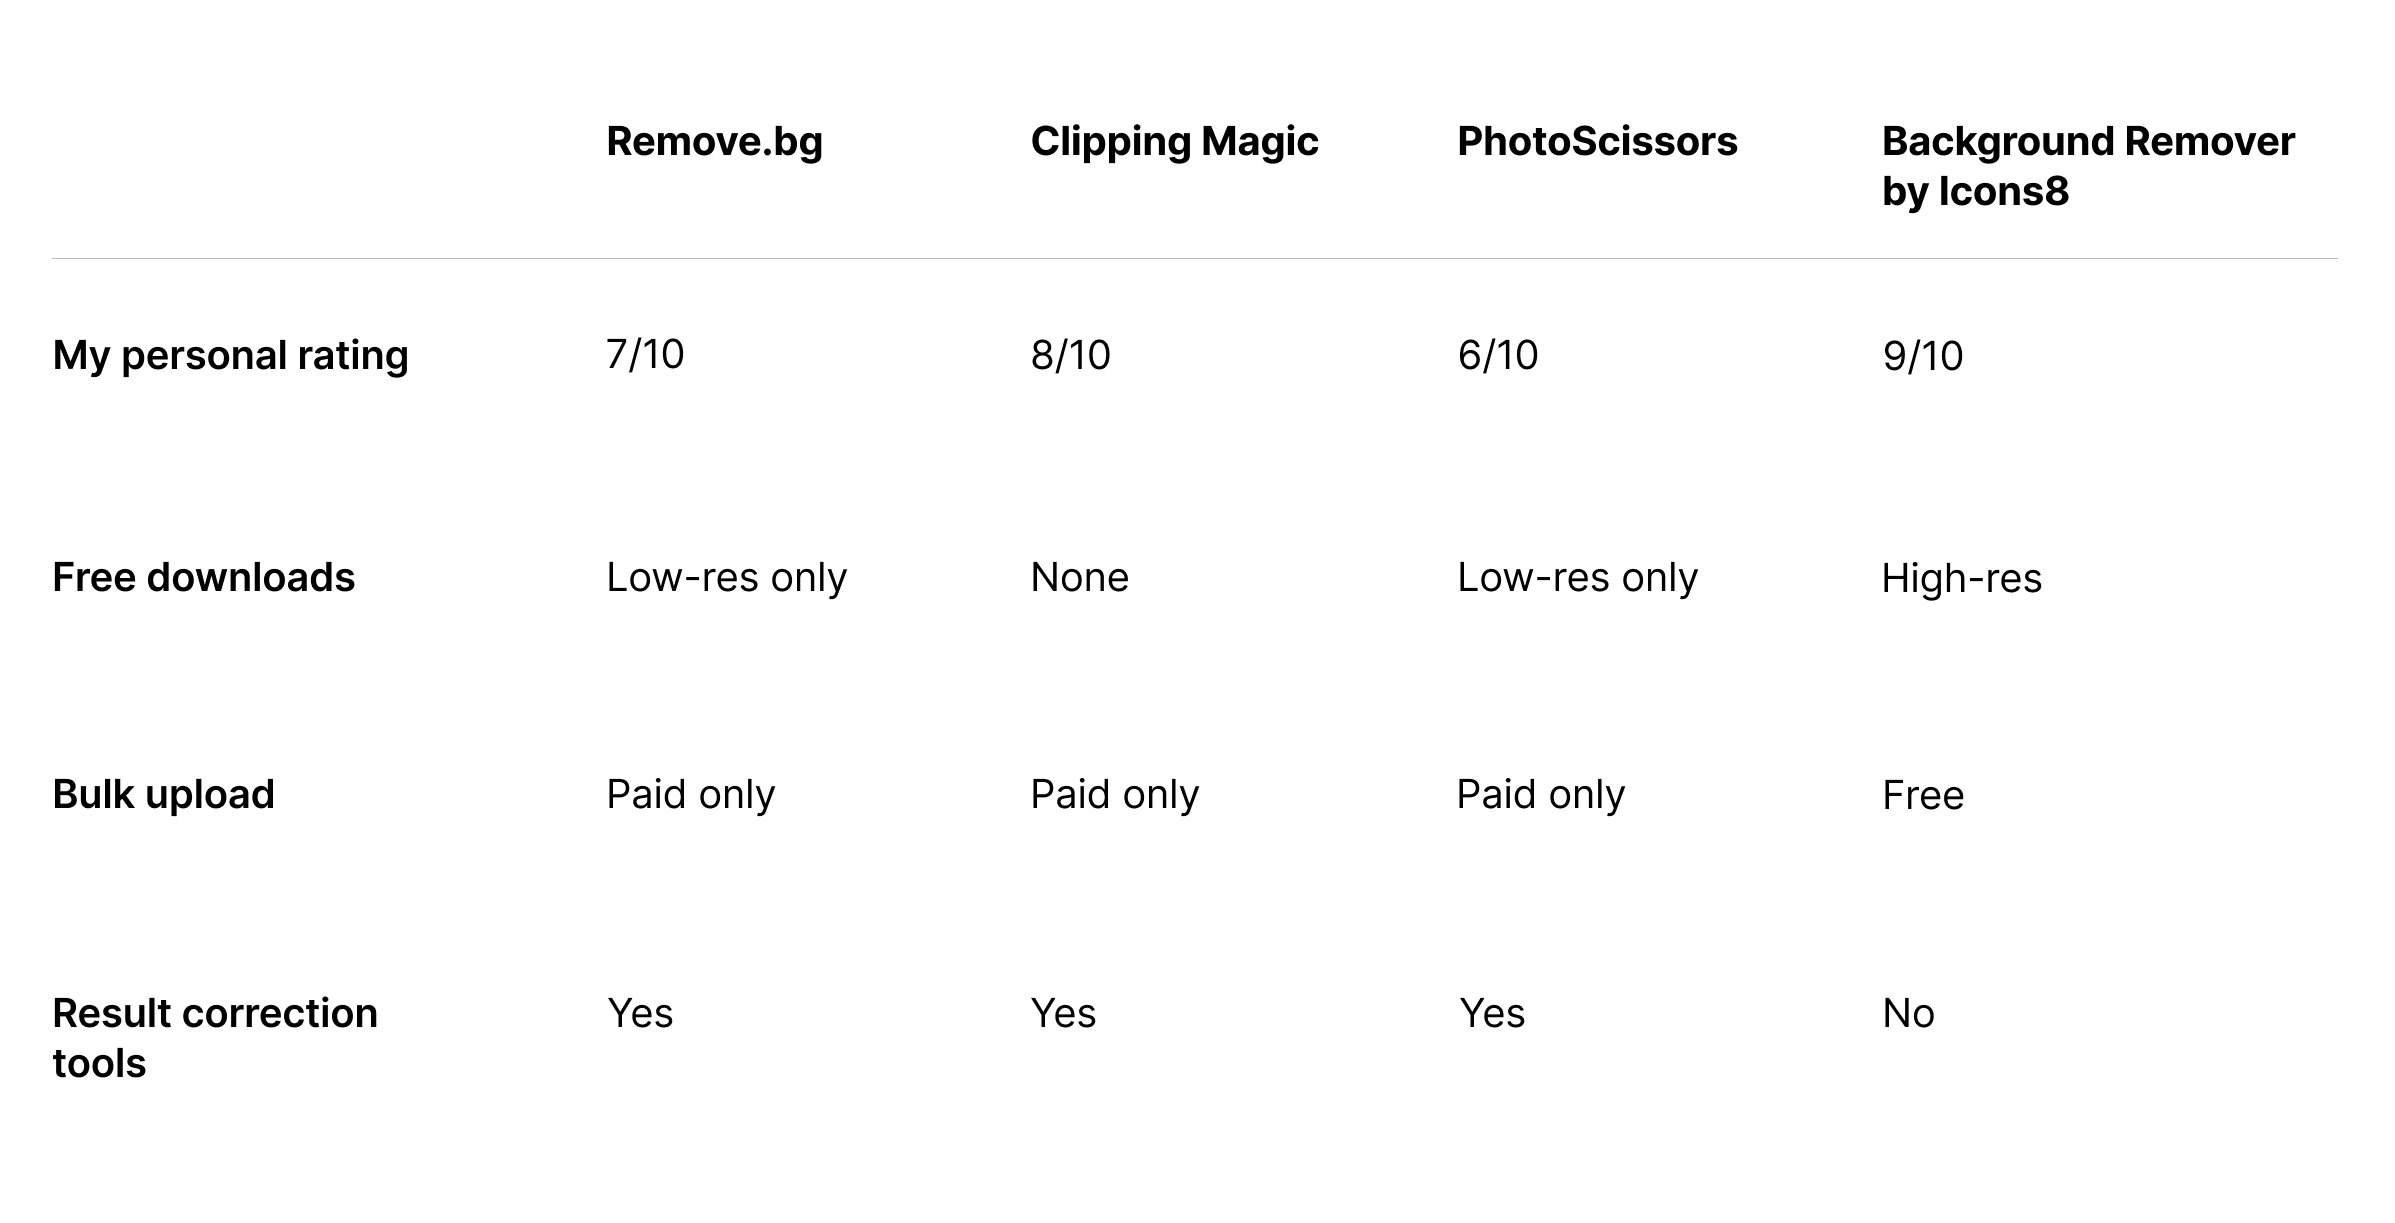 Table with test results and personal rating: Remove.bg is 7/10, Clipping Magic is 8/10, Photoscissors is 6/10, and Background Remover by Icons8 is 9/10